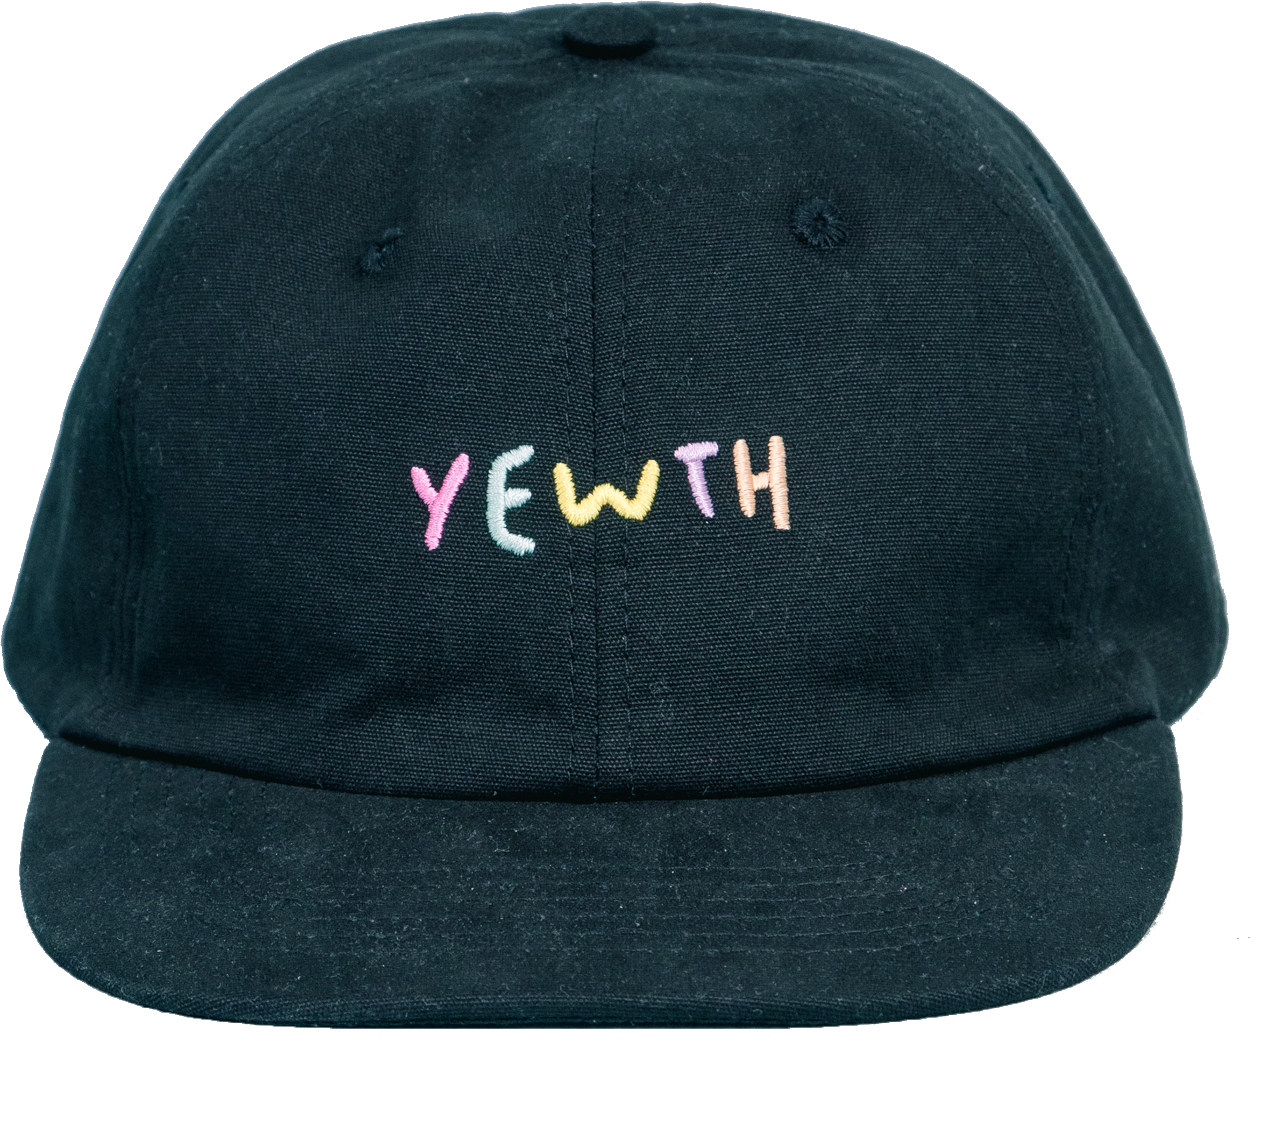 yewth embroidered hat (4 of 8).png